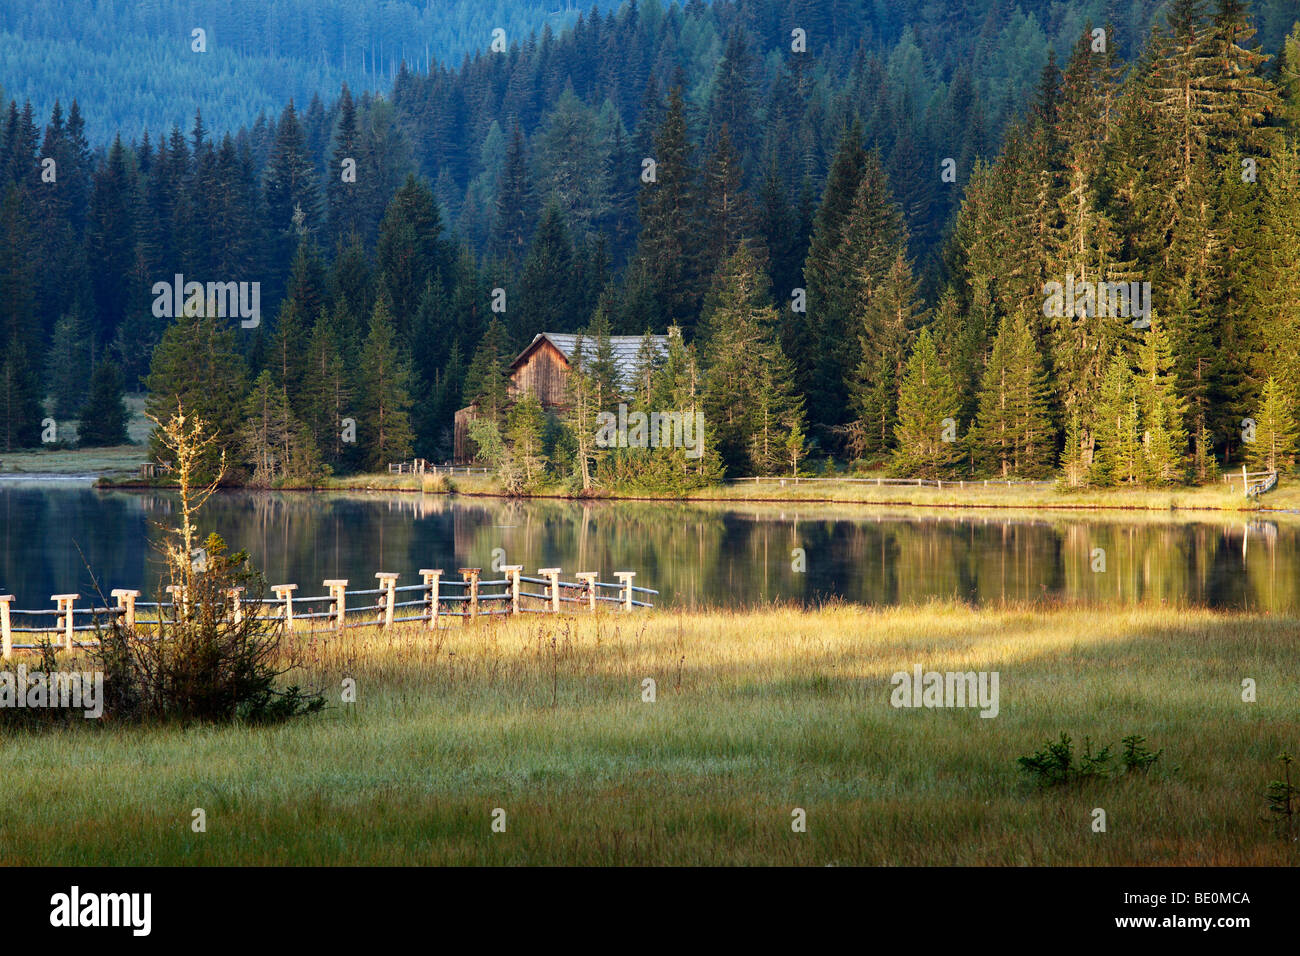 Prebersee Lake in the morning, Lungau, Salzburg state, Austria, Europe Stock Photo